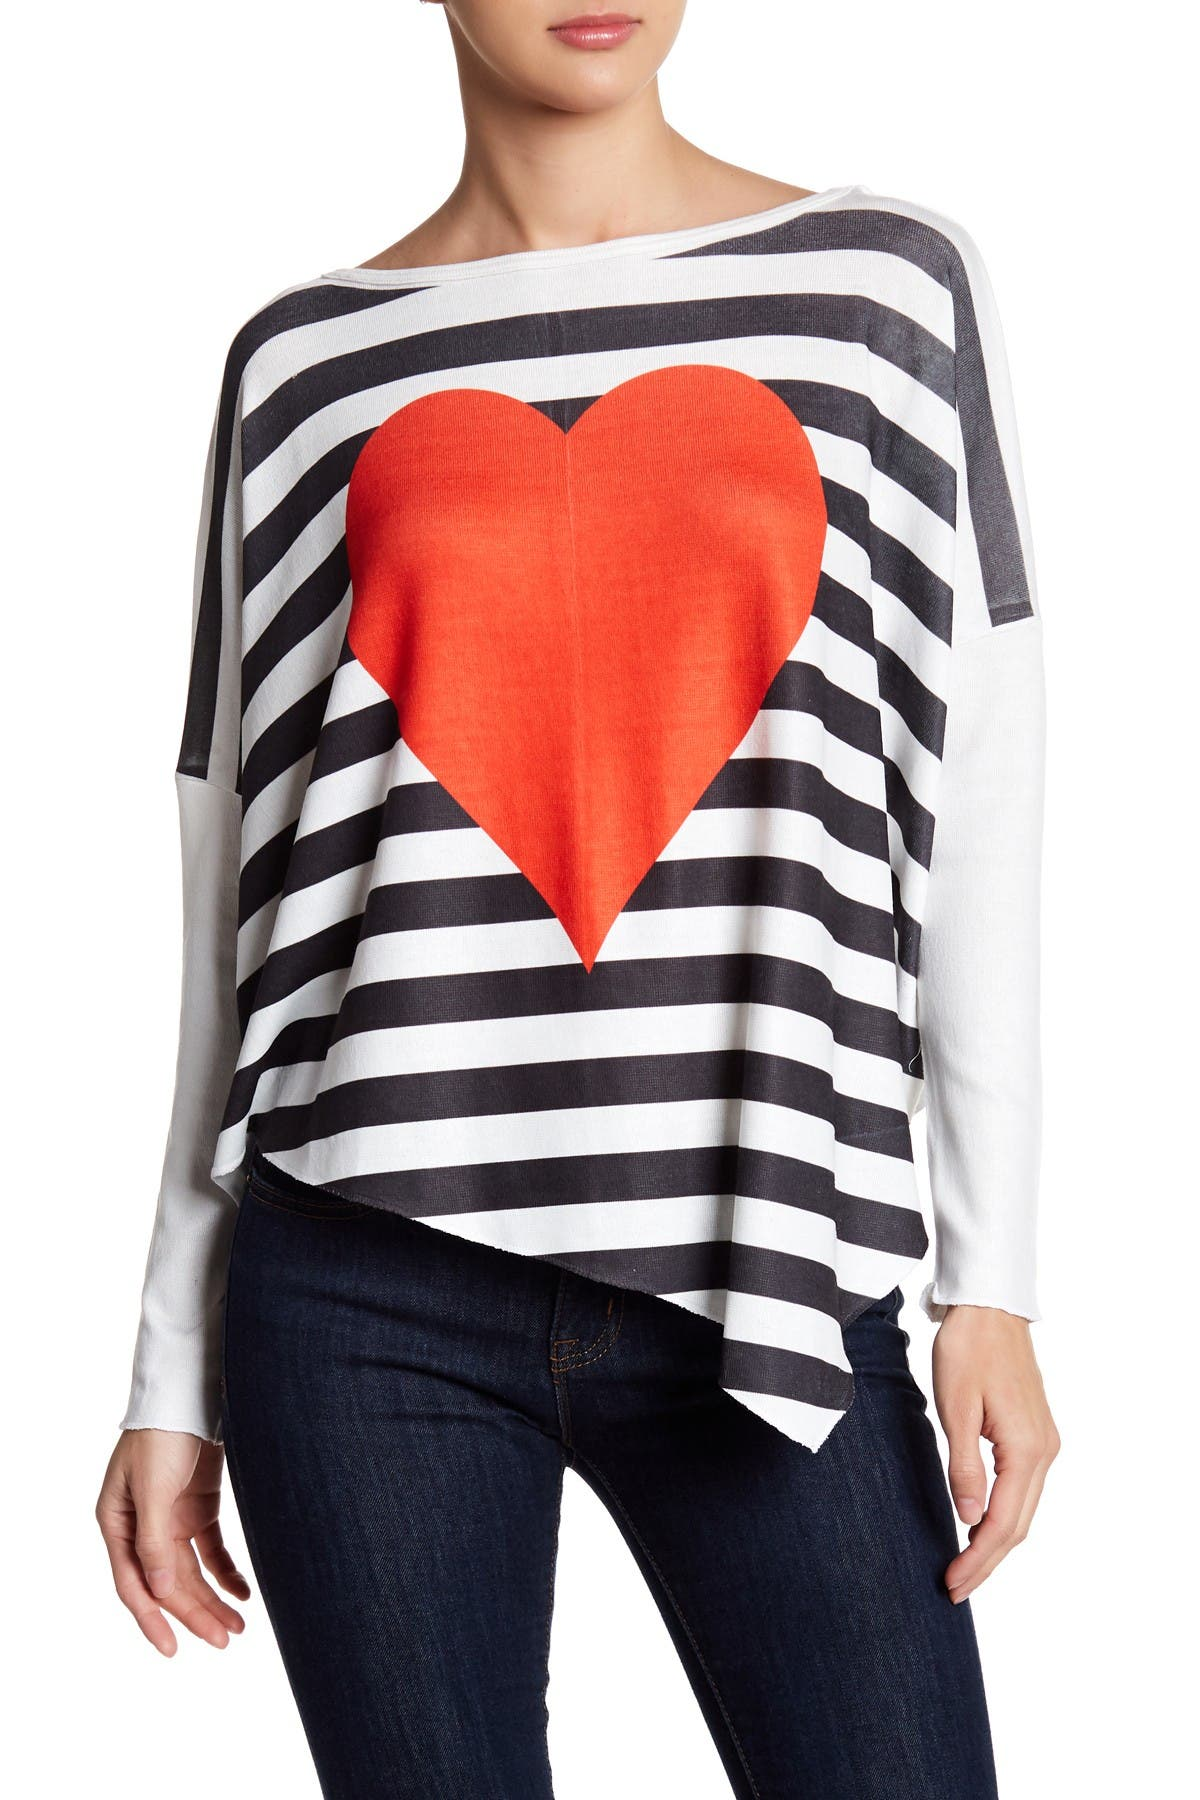 Image of Go Couture Printed Asymmetrical Hem Dolman Sweater